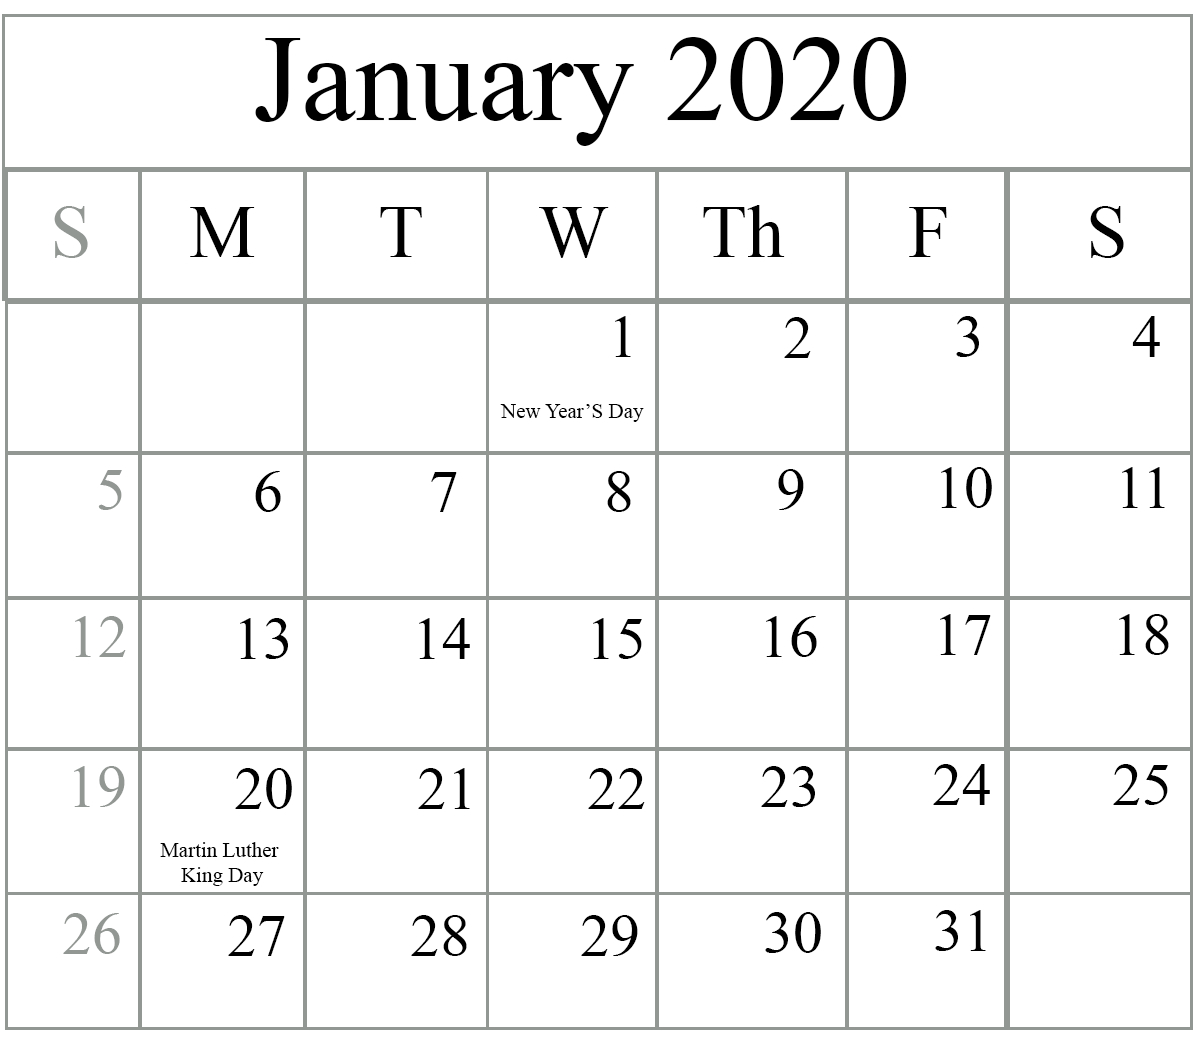 Free Blank January 2020 Calendar Printable In Pdf, Word, Excel Monthly Calender I Can Edit On